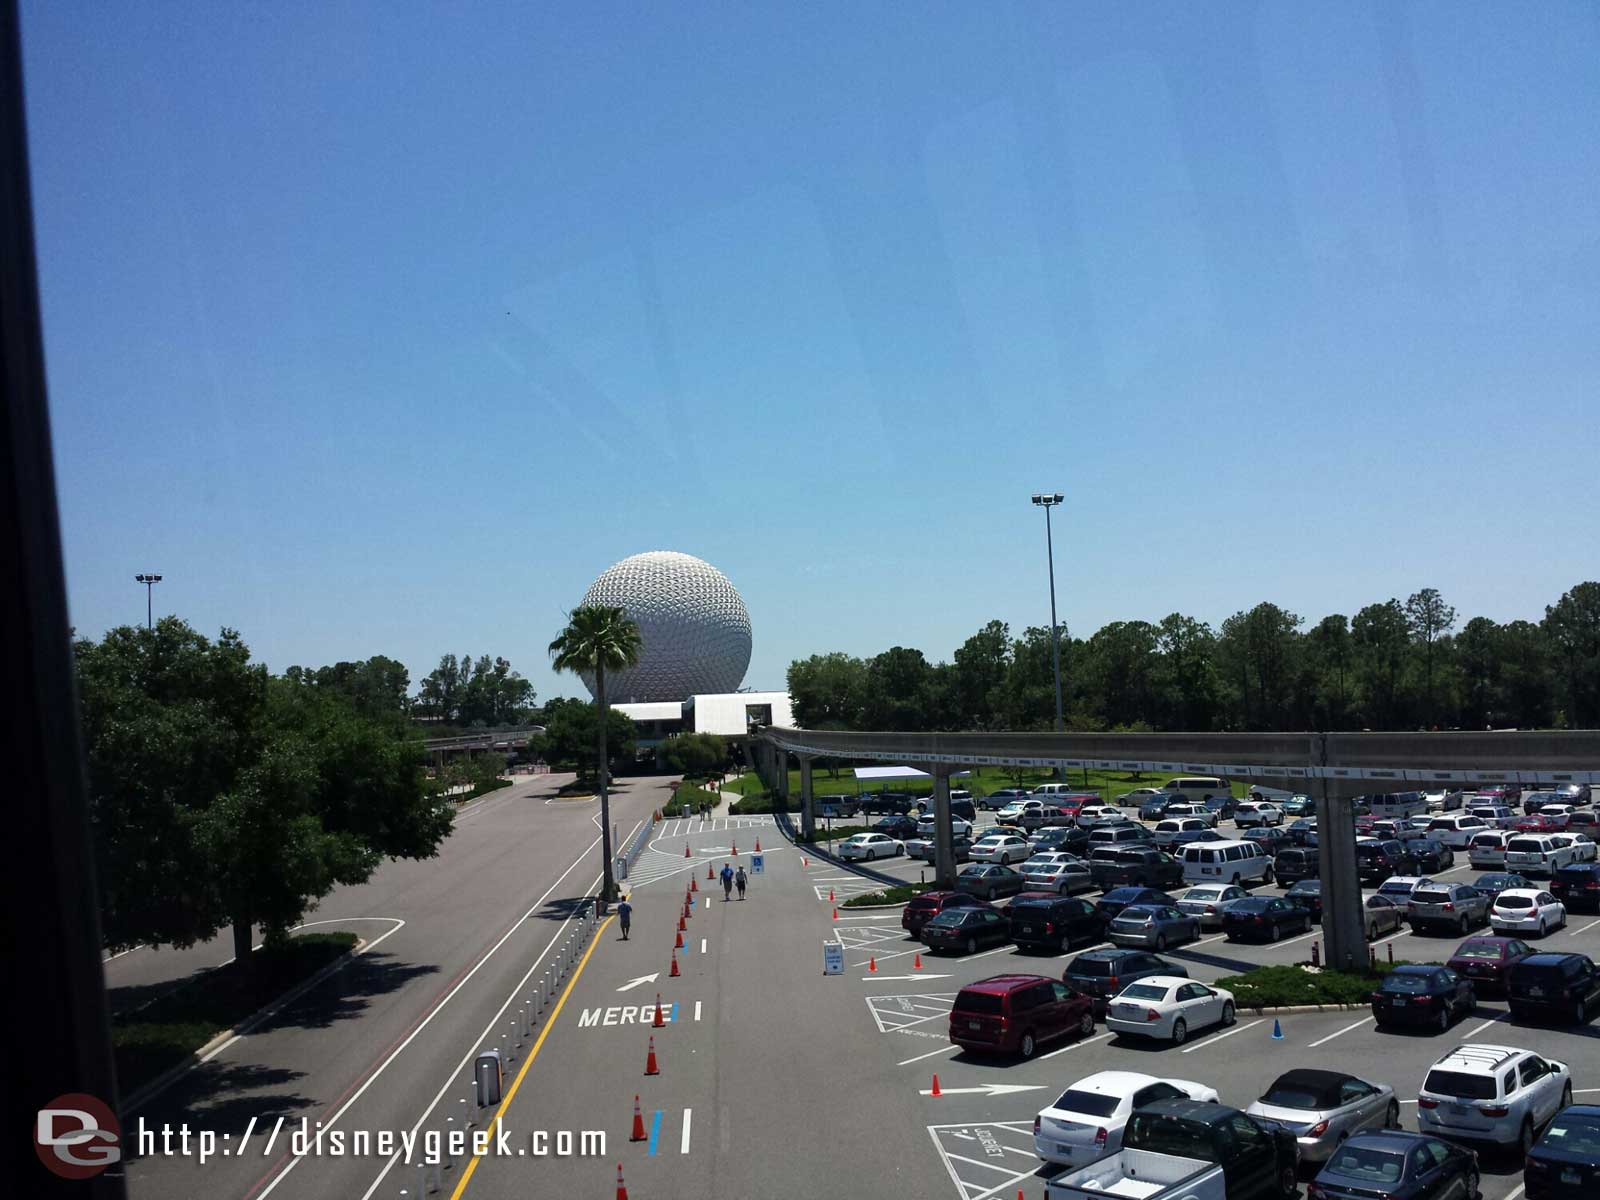 Arriving at #Epcot via Monorail #WDW